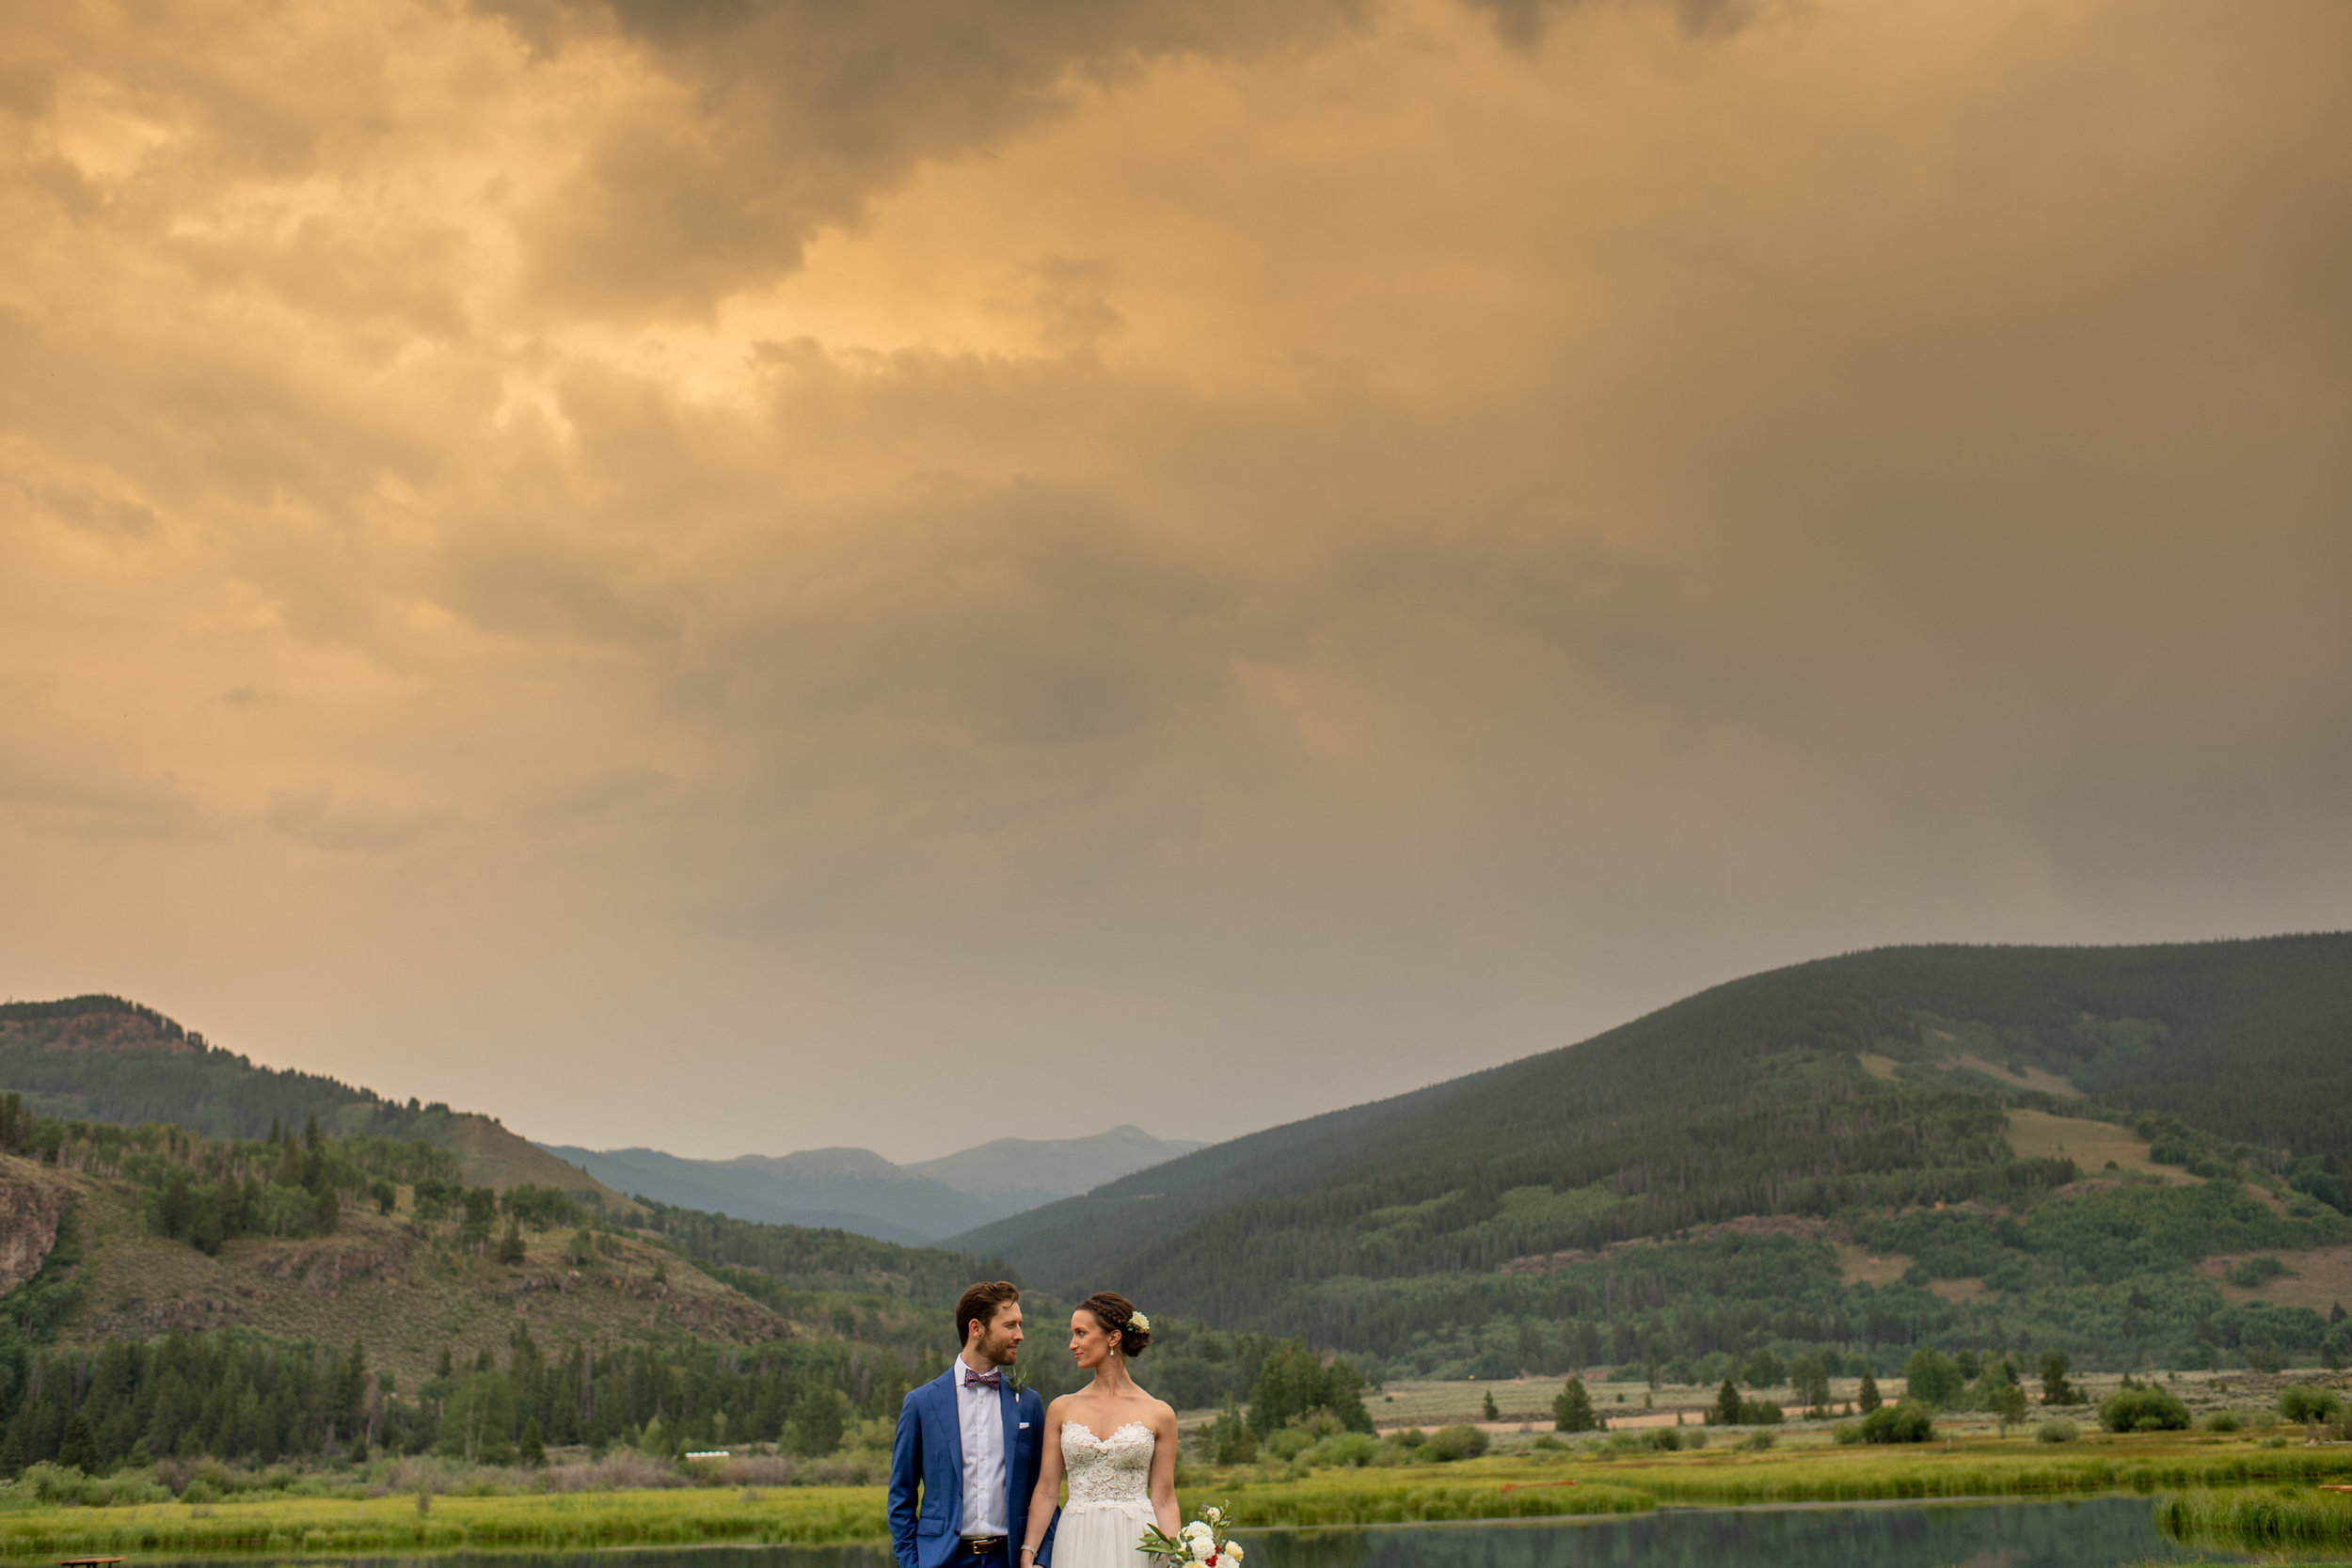 Jess and Joel | July 2018 | Camp Hale - Breckenridge, CO |  Selah Photography